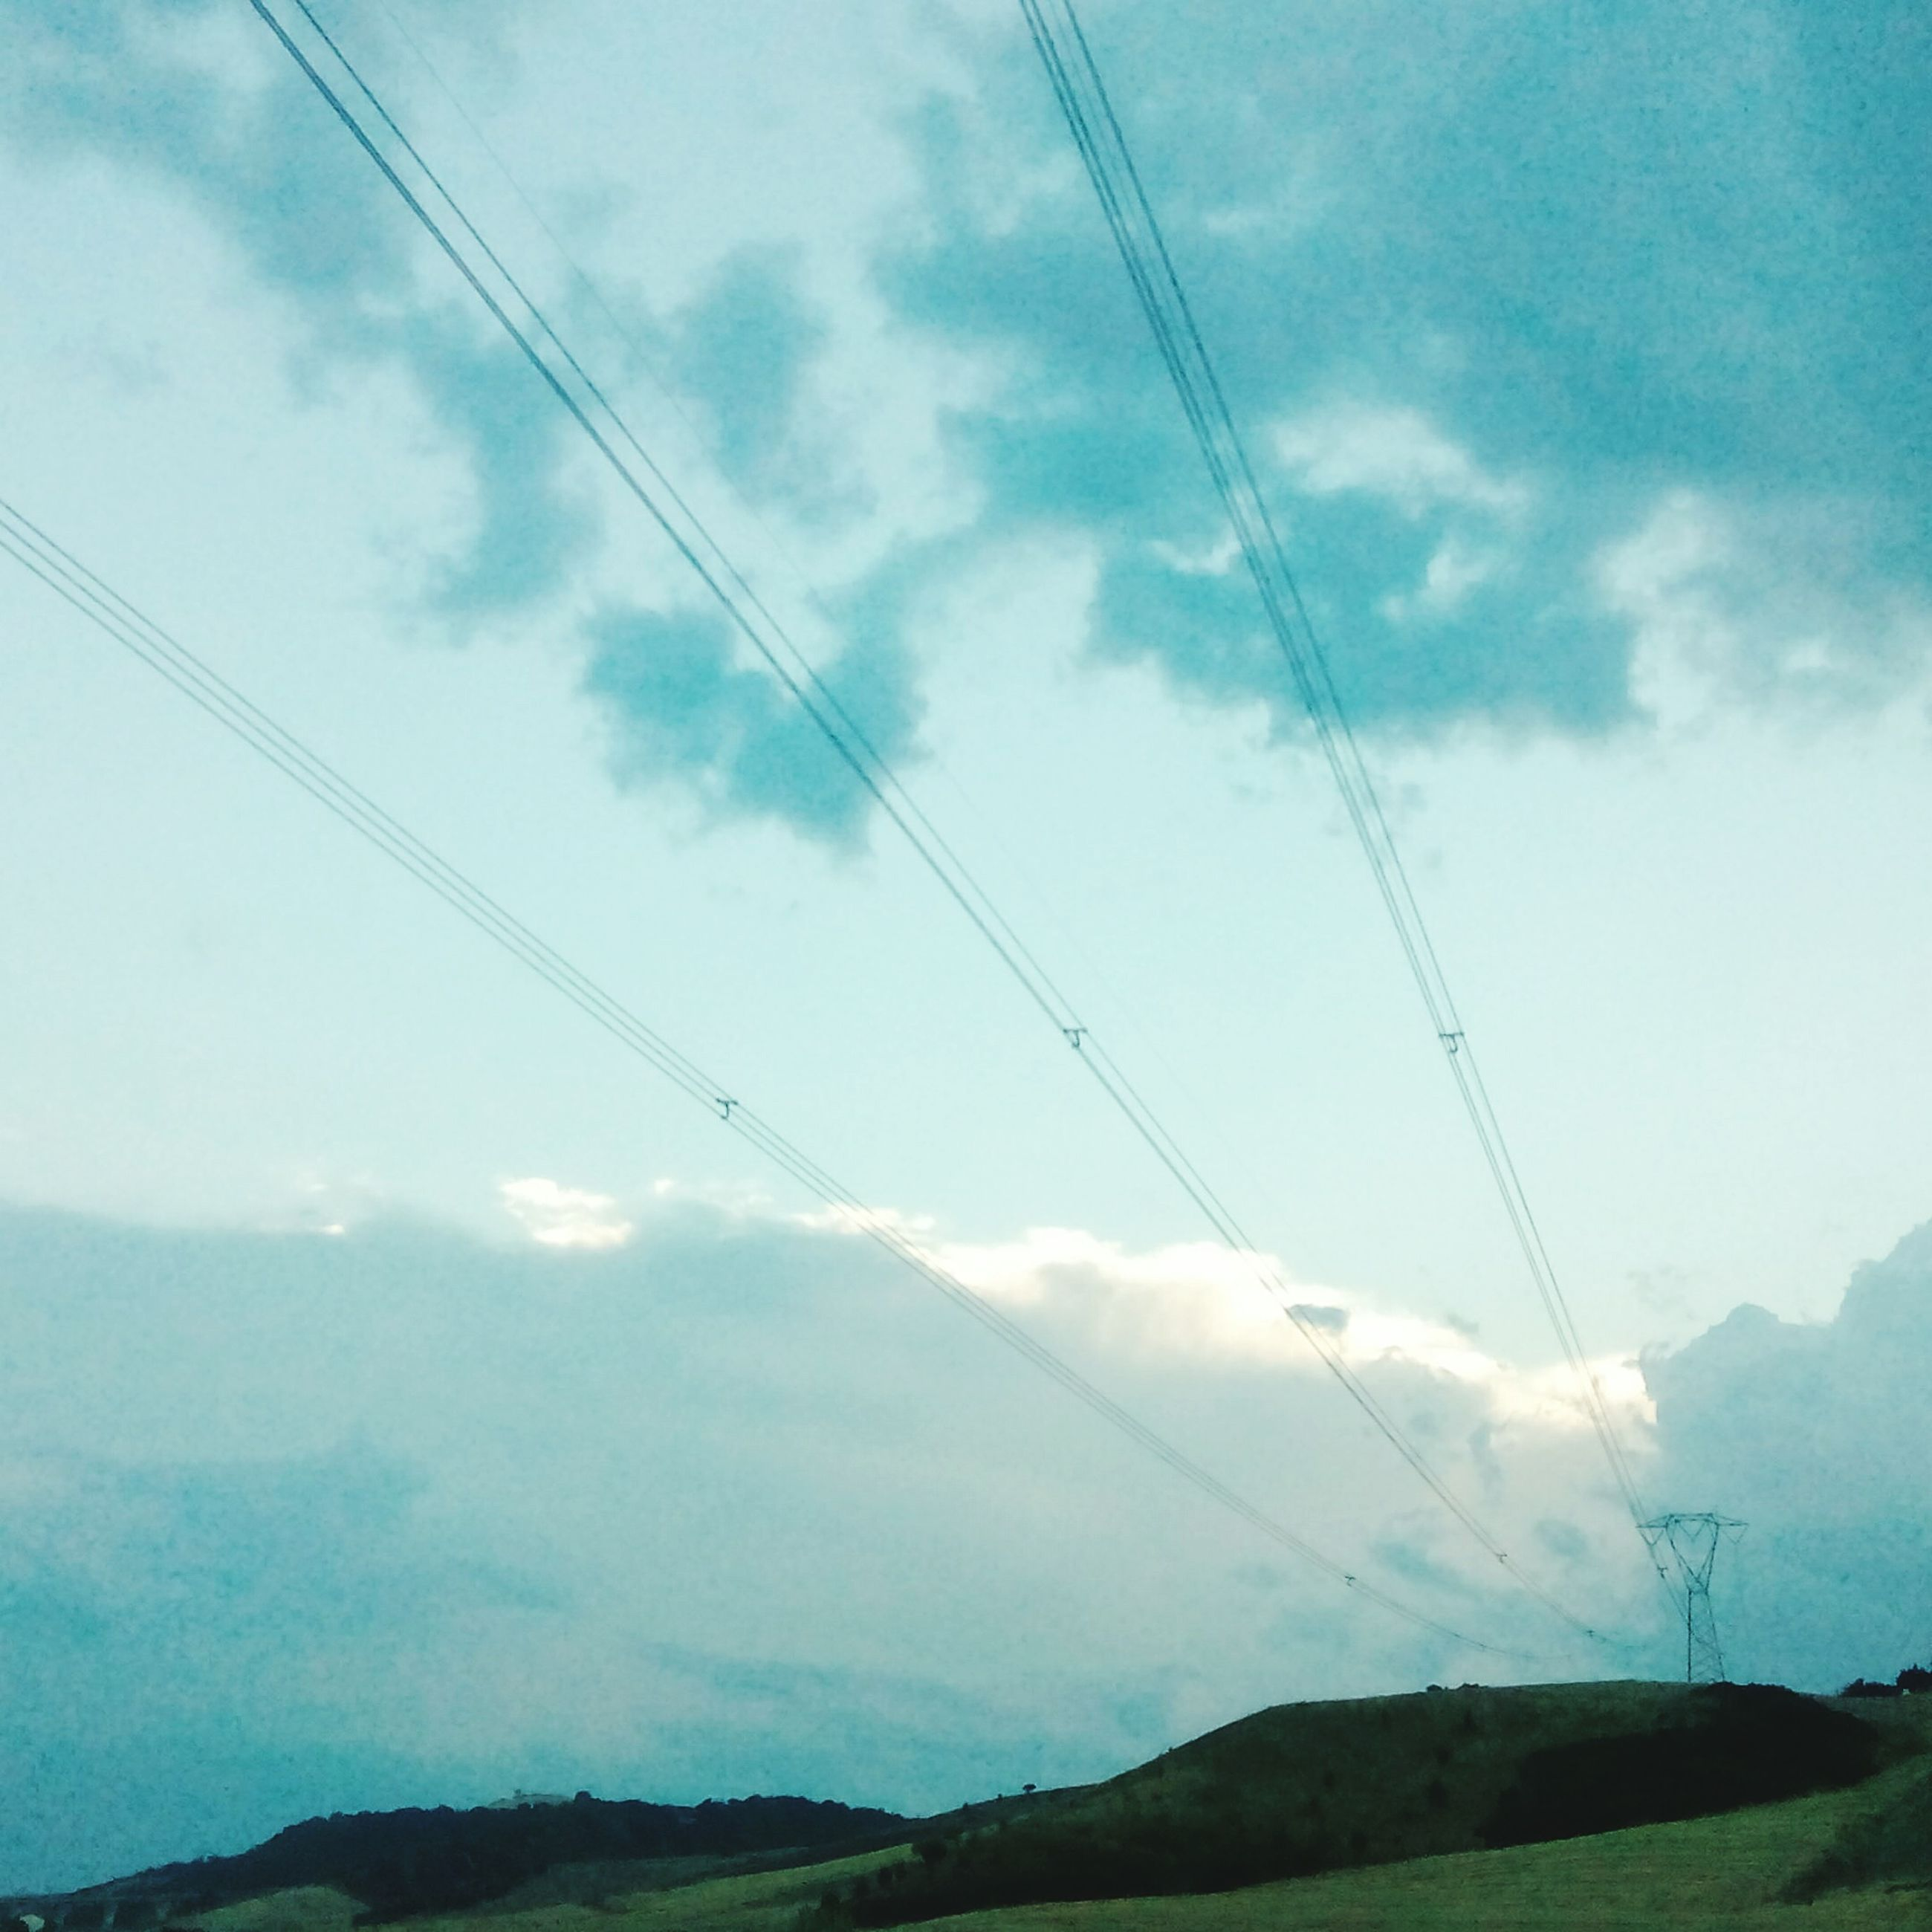 sky, mountain, power line, cable, electricity pylon, scenics, cloud - sky, tranquil scene, connection, electricity, tranquility, landscape, beauty in nature, mountain range, nature, power supply, cloud, cloudy, transportation, overhead cable car